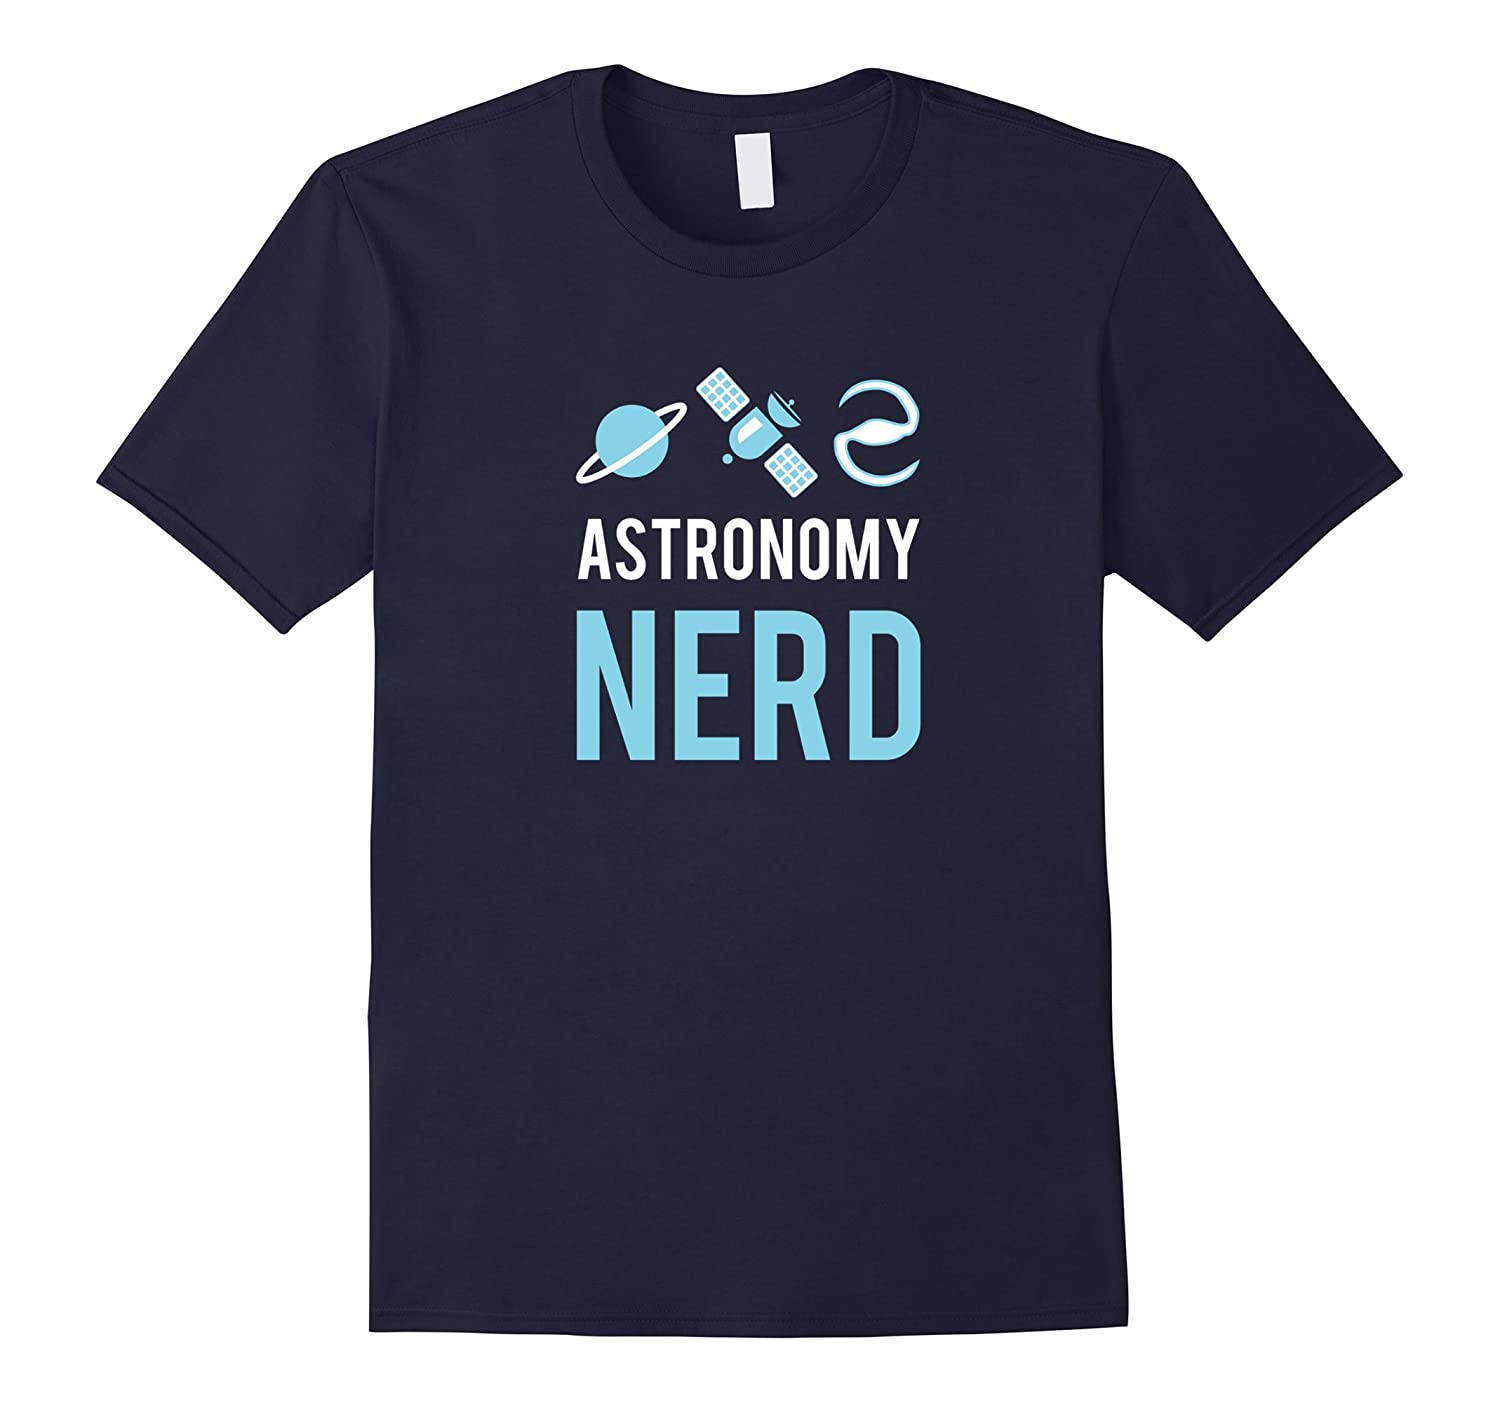 Astronomy Nerd - Funny Science March T-shirt for Astronomers-TJ